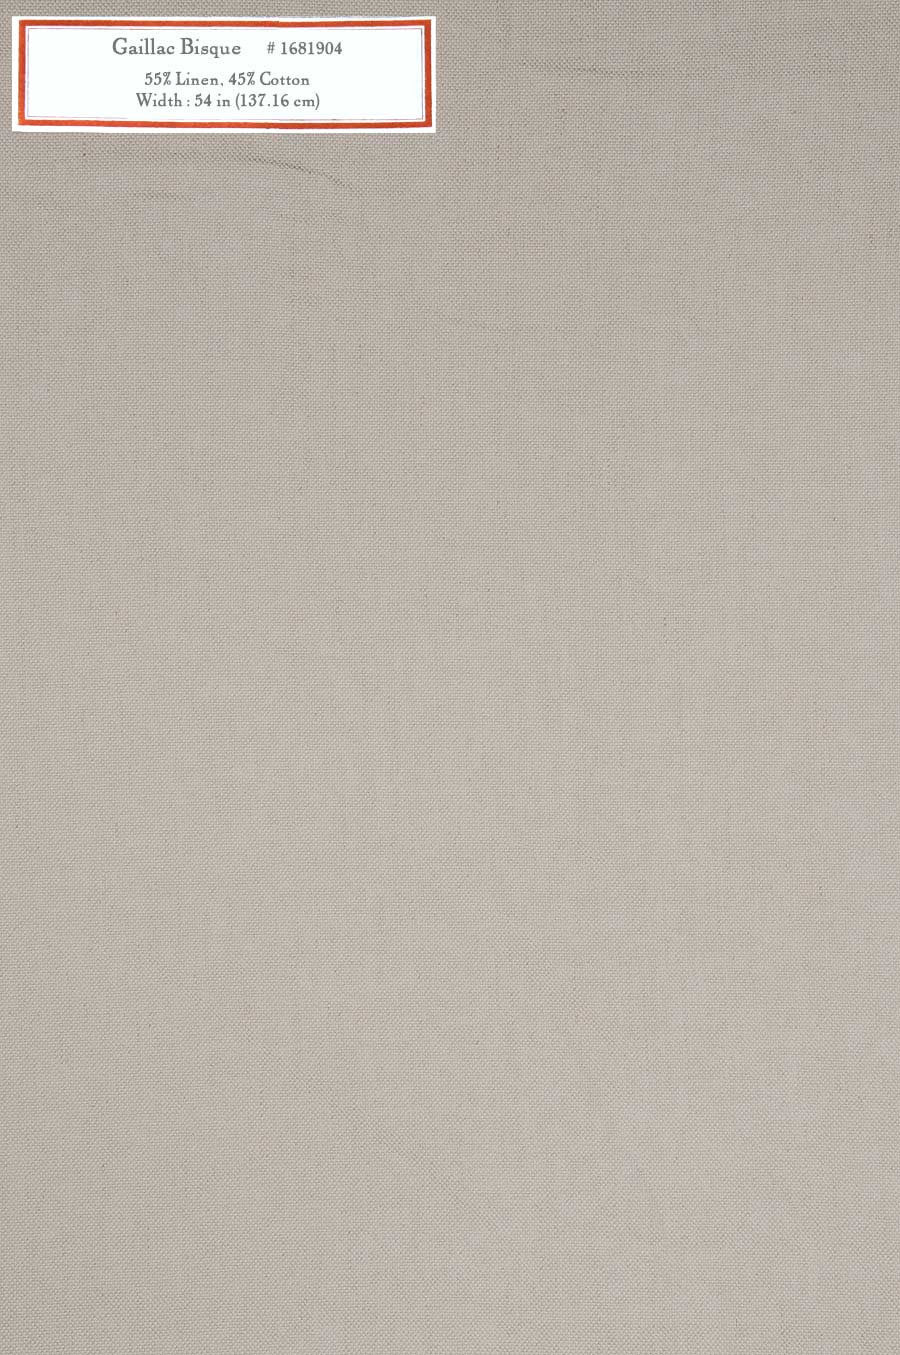 Home Decorative Fabric - Gaillac Bisque